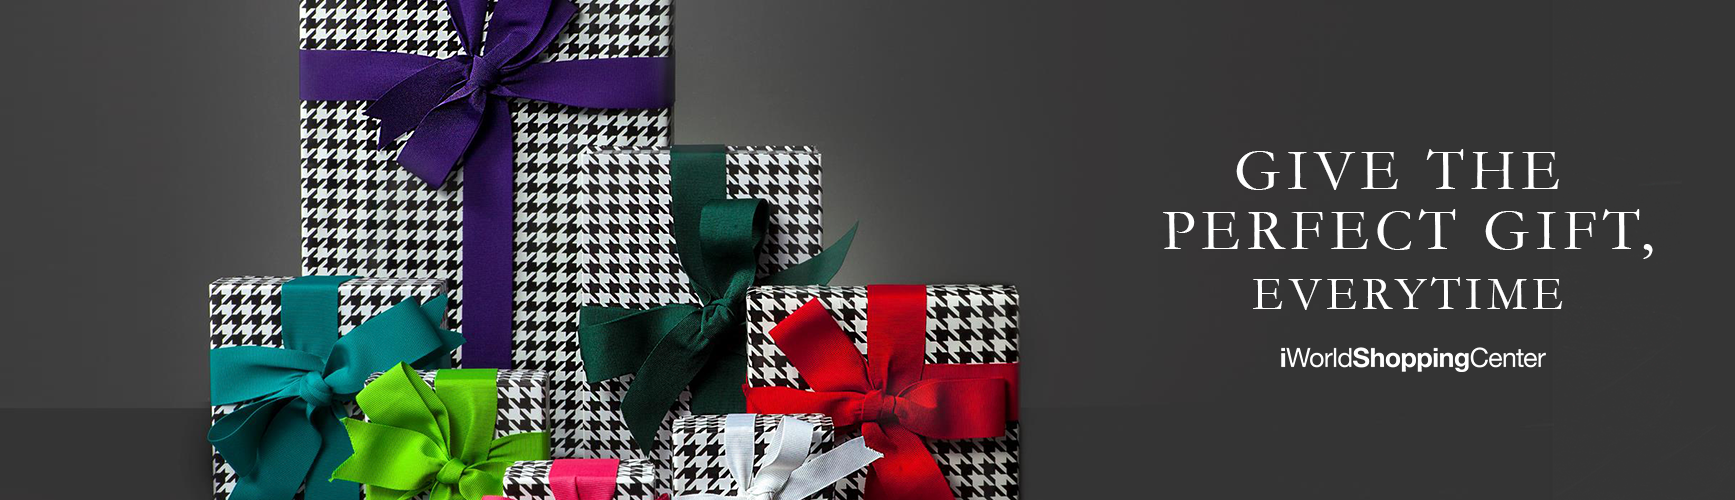 Gifts page banner